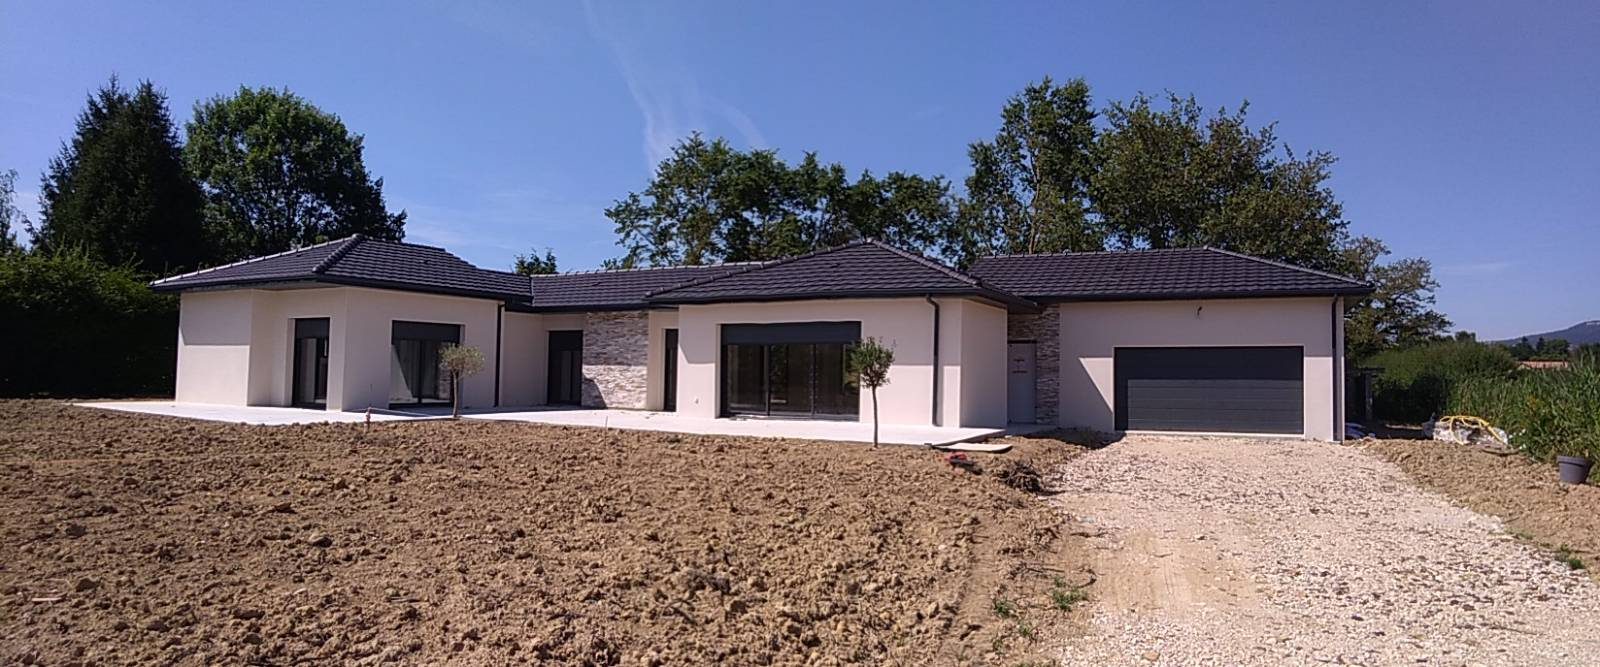 Construction d\'une maison contemporaine 160 m² dans l\'ain ...